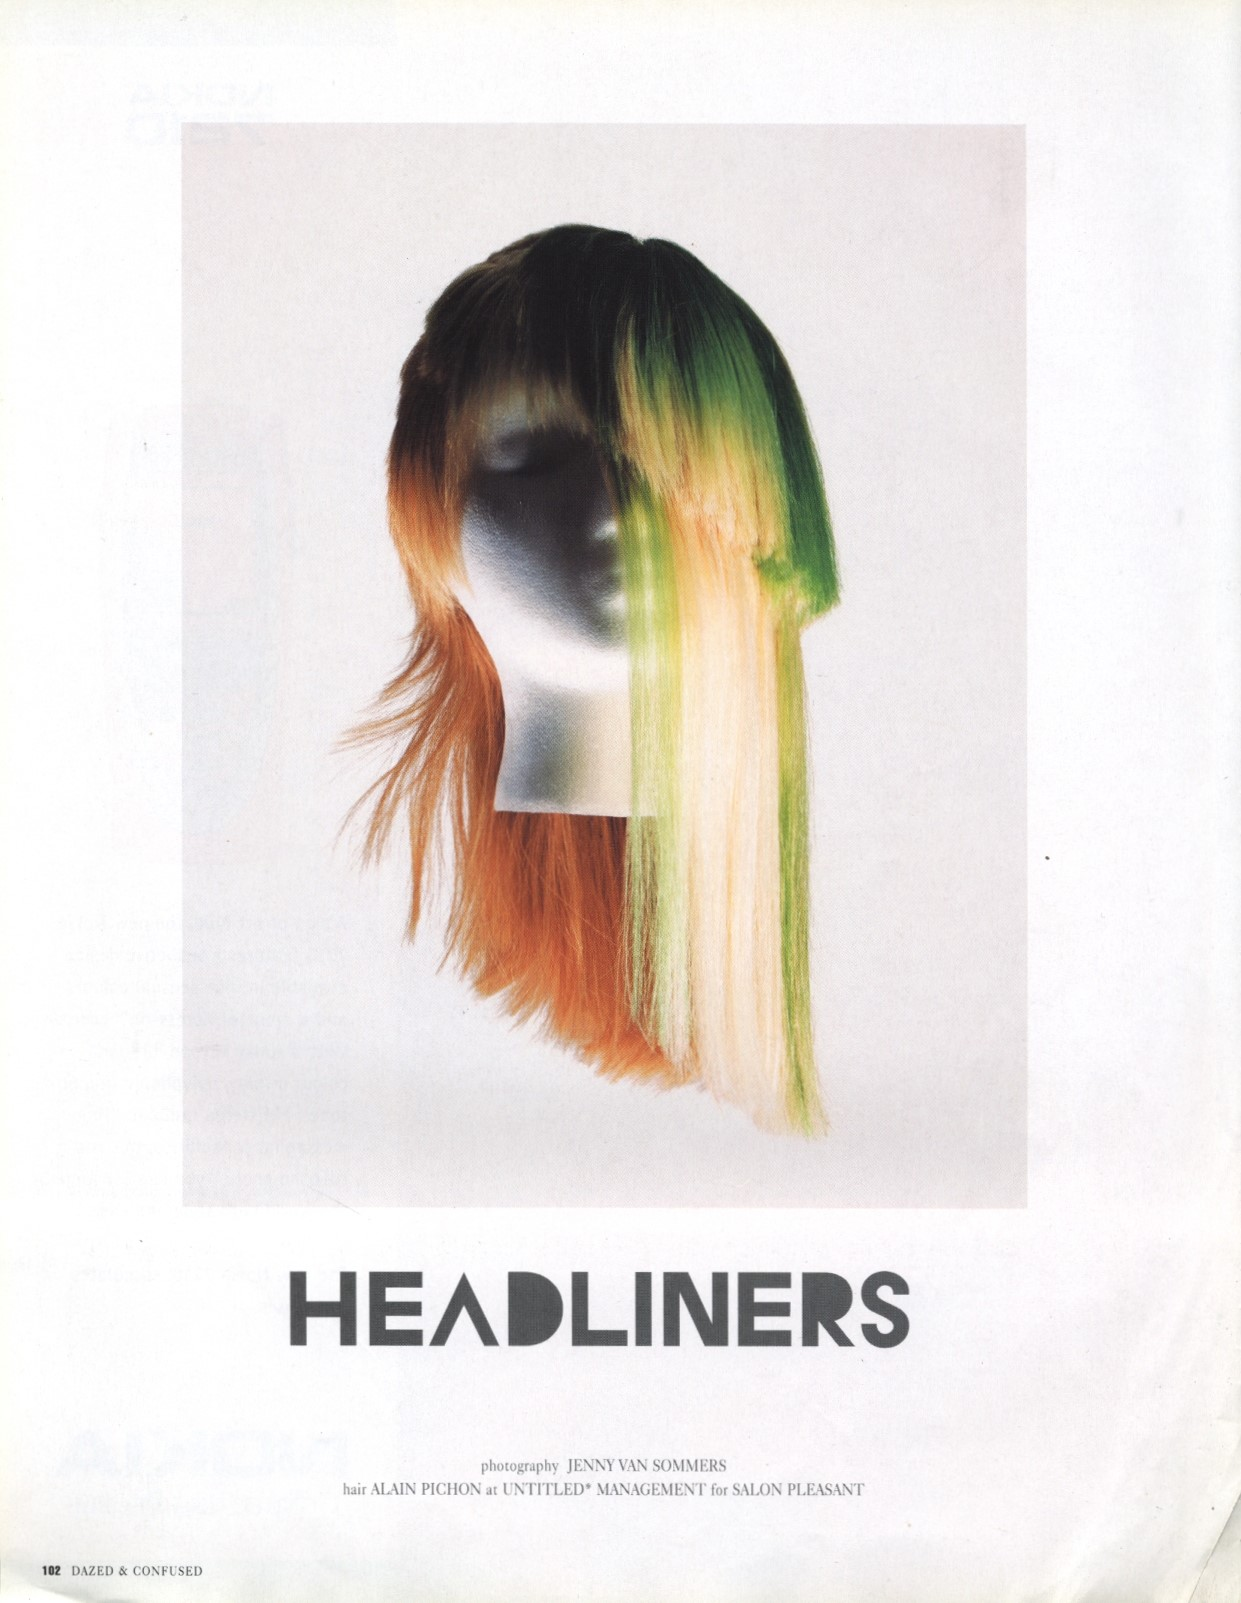 HEADLINERS | PHOTOGRAPHY JENNY VAN SOMMERS | HAIR ALAIN PICHON | DAZED & CONFUSED JAPAN | NOVEMBER 2002